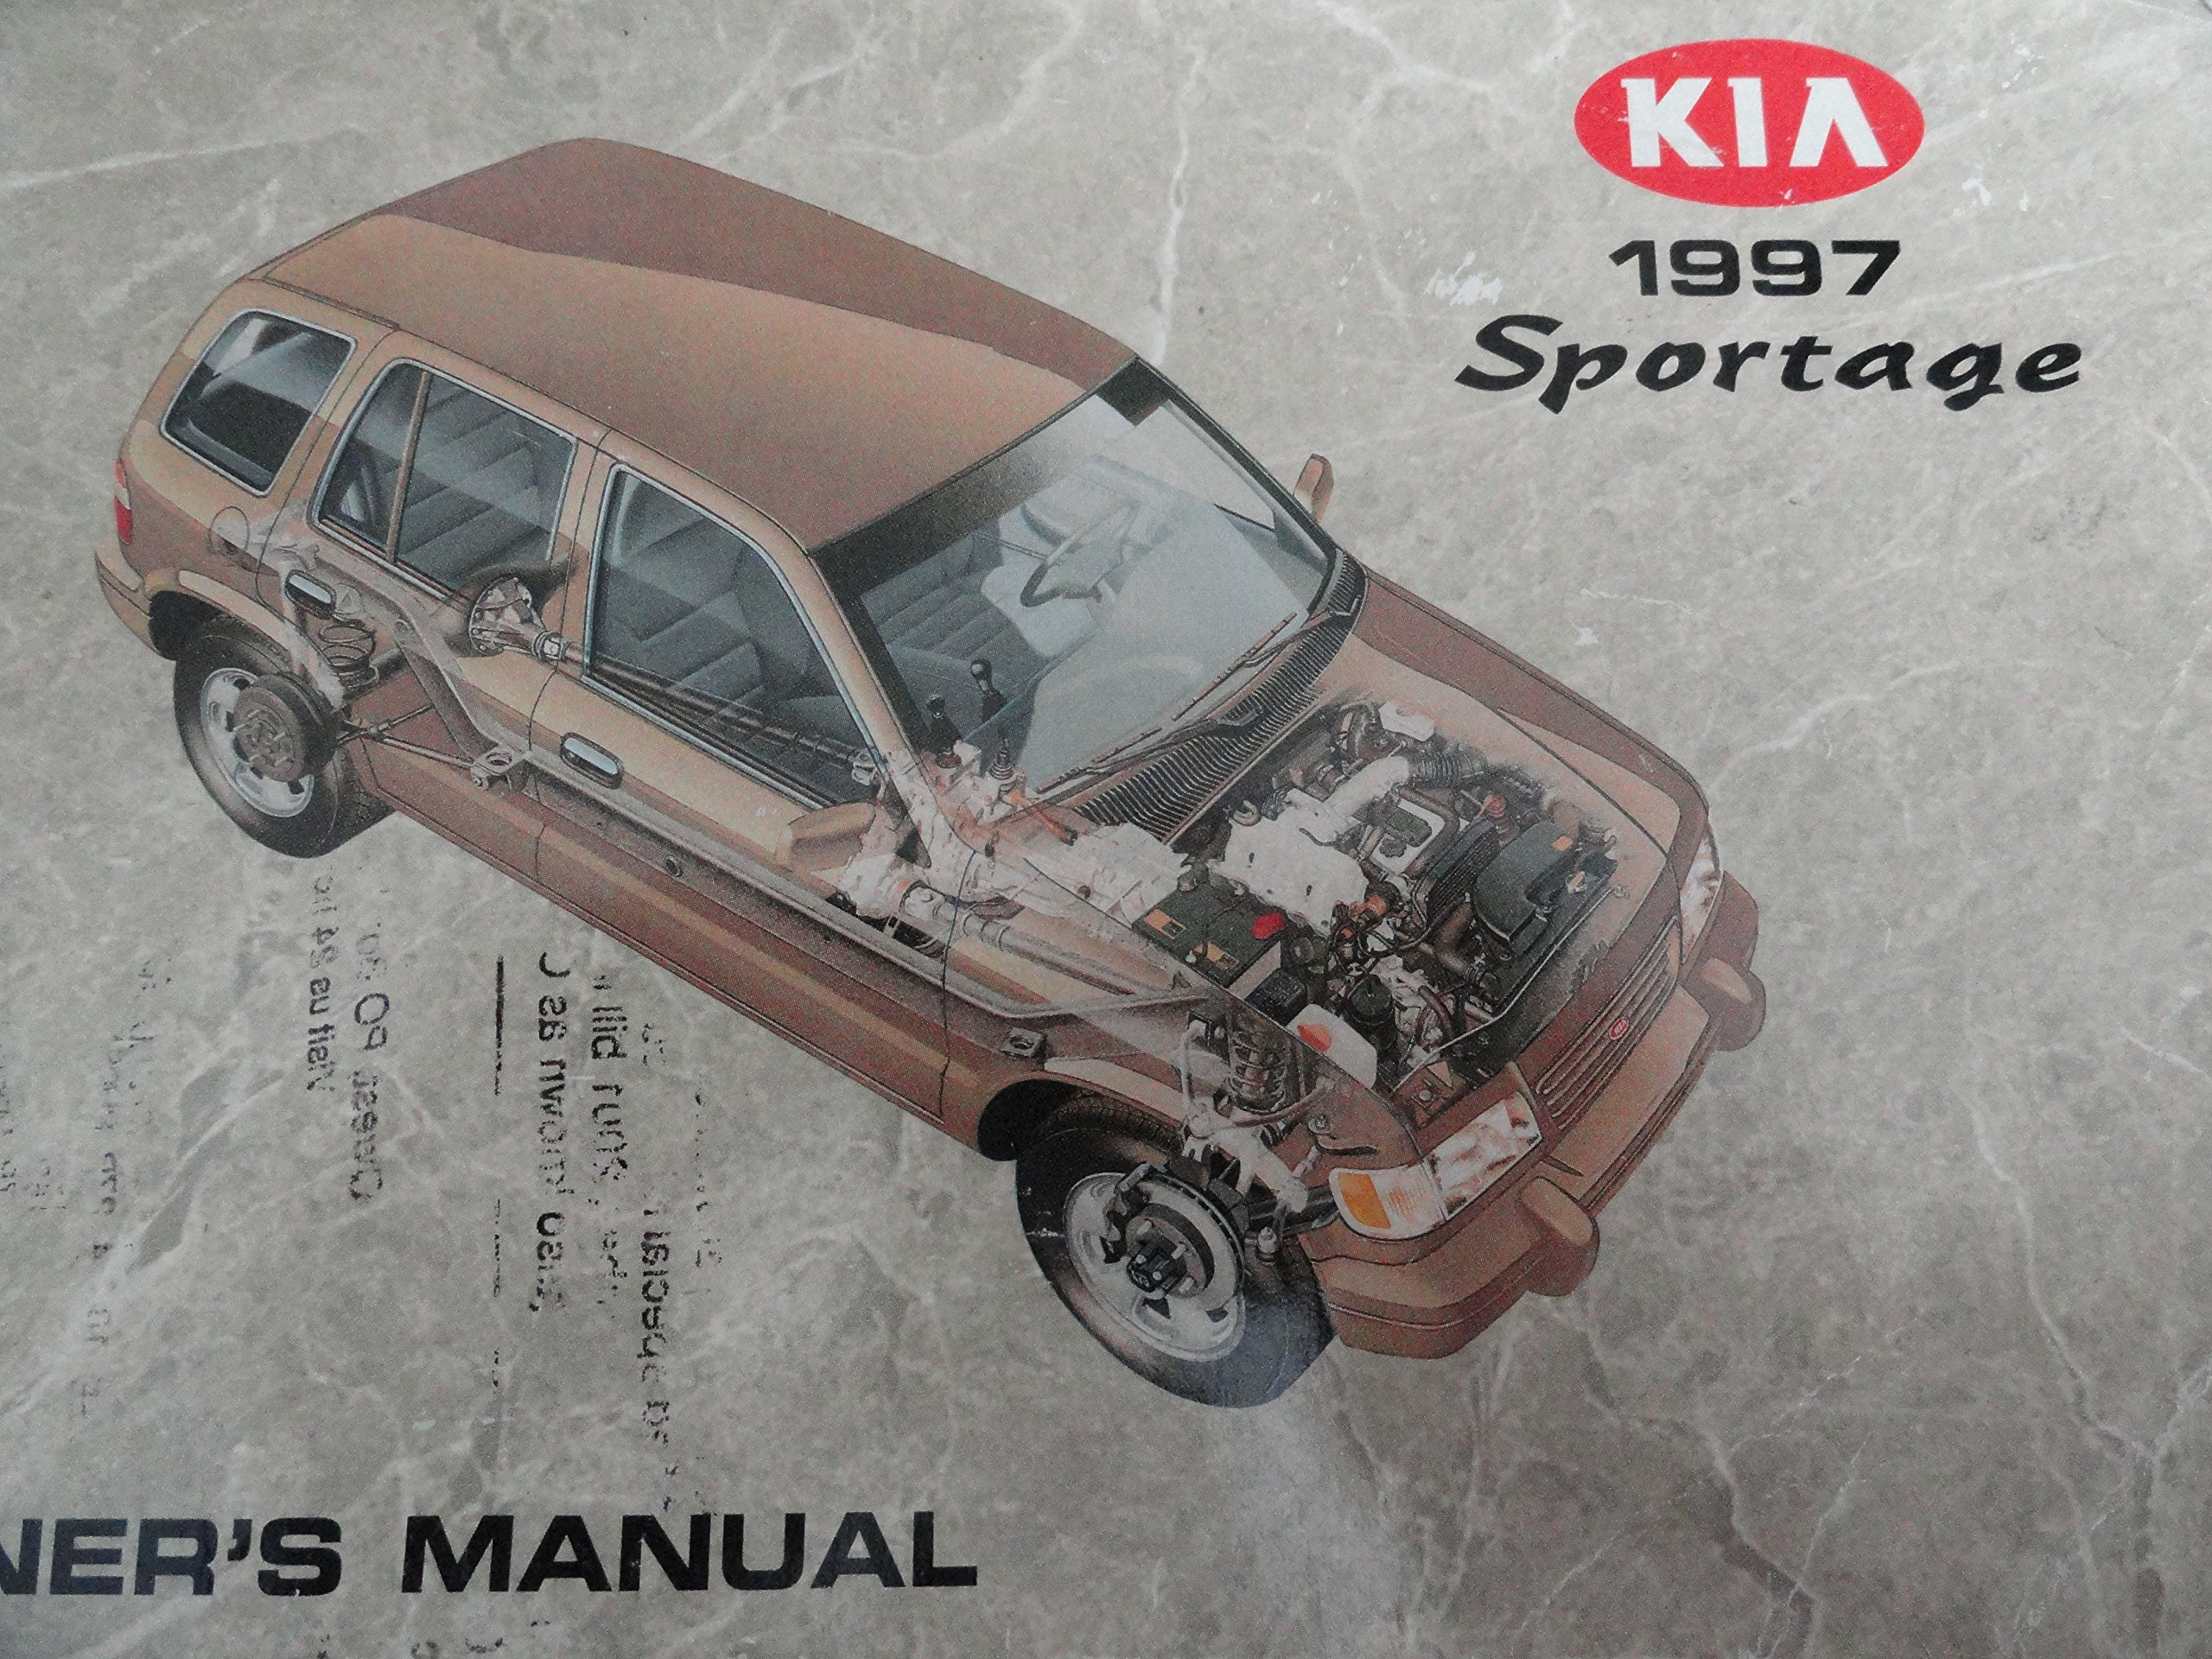 1997 Kia Sportage Owners Manual: Kia: Amazon.com: Books